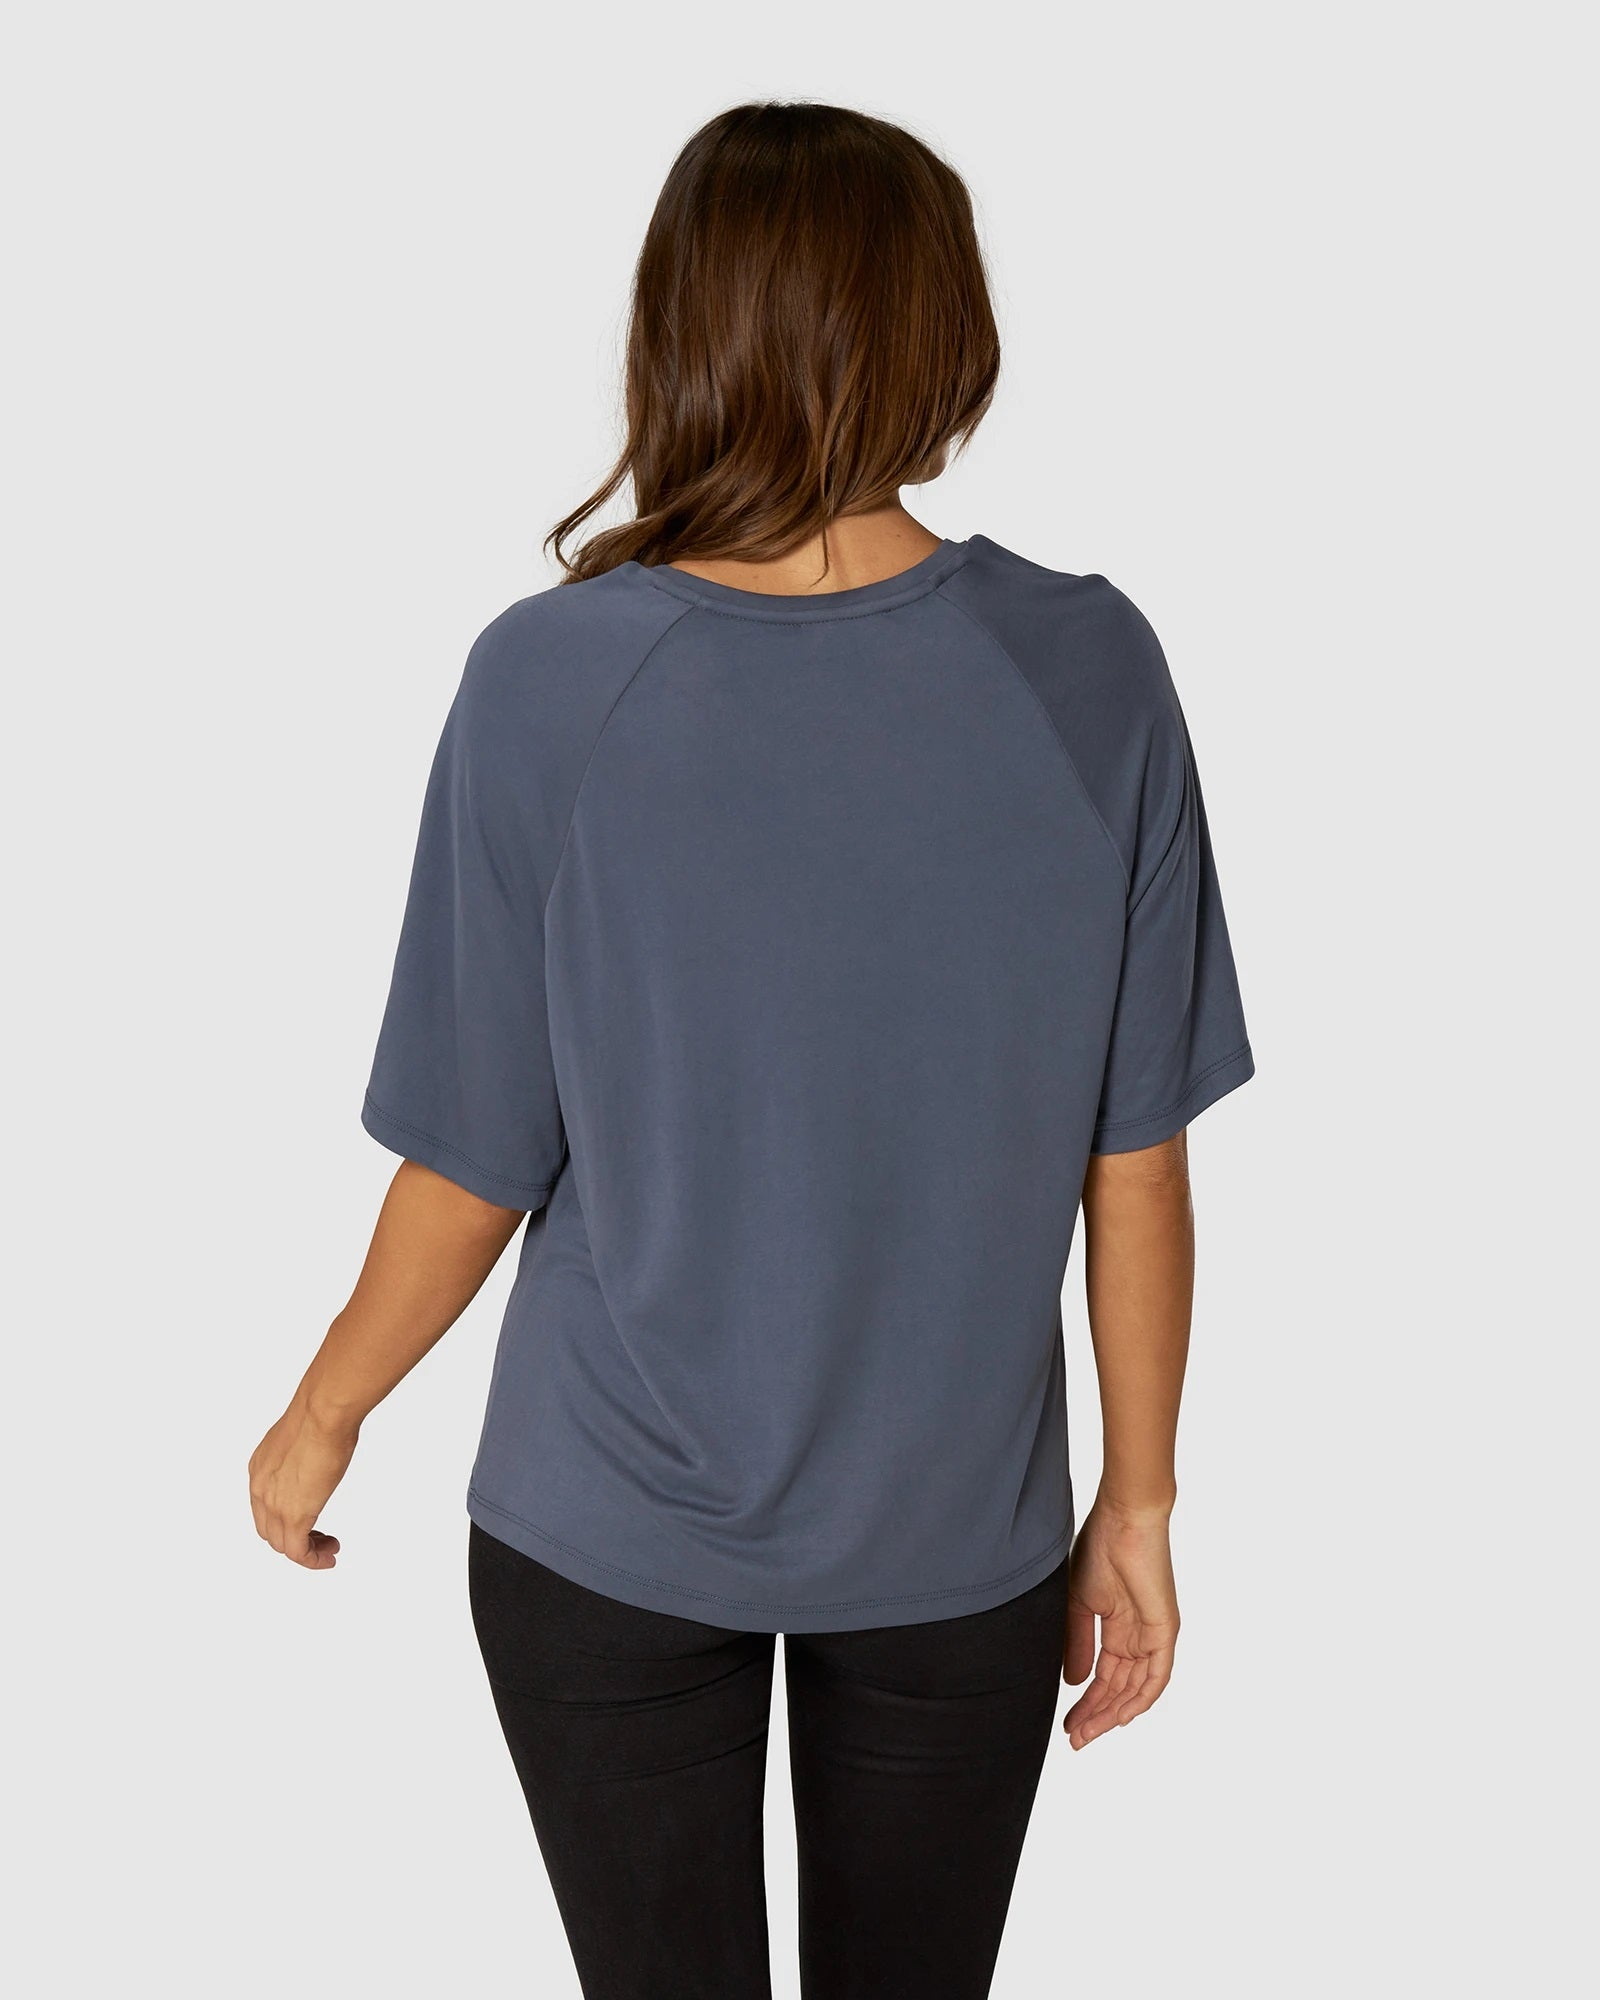 APERO BROOKLYN BEADED OVERSIZED TEE - WASHED BLUE/ SILVER